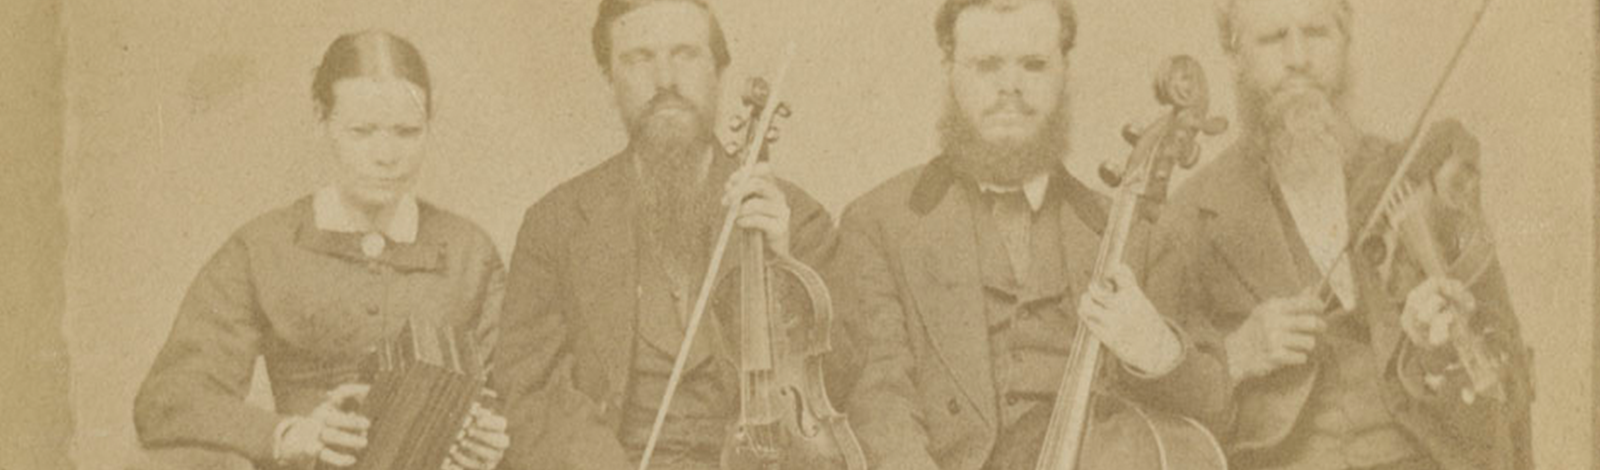 [Portrait of Hostetler family of blind musicians]. Mount Pleasant, Penna, [ca. 1866]. Picture shows one woman and three men, seated next to each other, and holding instruments. The woman holds an accordion in her lap and she looks slightly down. To her left is a man, his eyes closed, who holds a viola perpendicular to his lap with one hand and a bow in his other. To his left is a man resting a cello between his legs. He holds a bow across the base of the cello with his right hand. To his left is the last man, his eyes closed, who holds a violin by his left shoulder and a raised bow in in his right hand. The woman, as well as the man who holds a cello, wear glasses. The woman wears a dark-colored corseted dress with long sleeves and a long skirt. The men, who look toward the viewer, are bearded and wear dark-colored suits. [End of description]